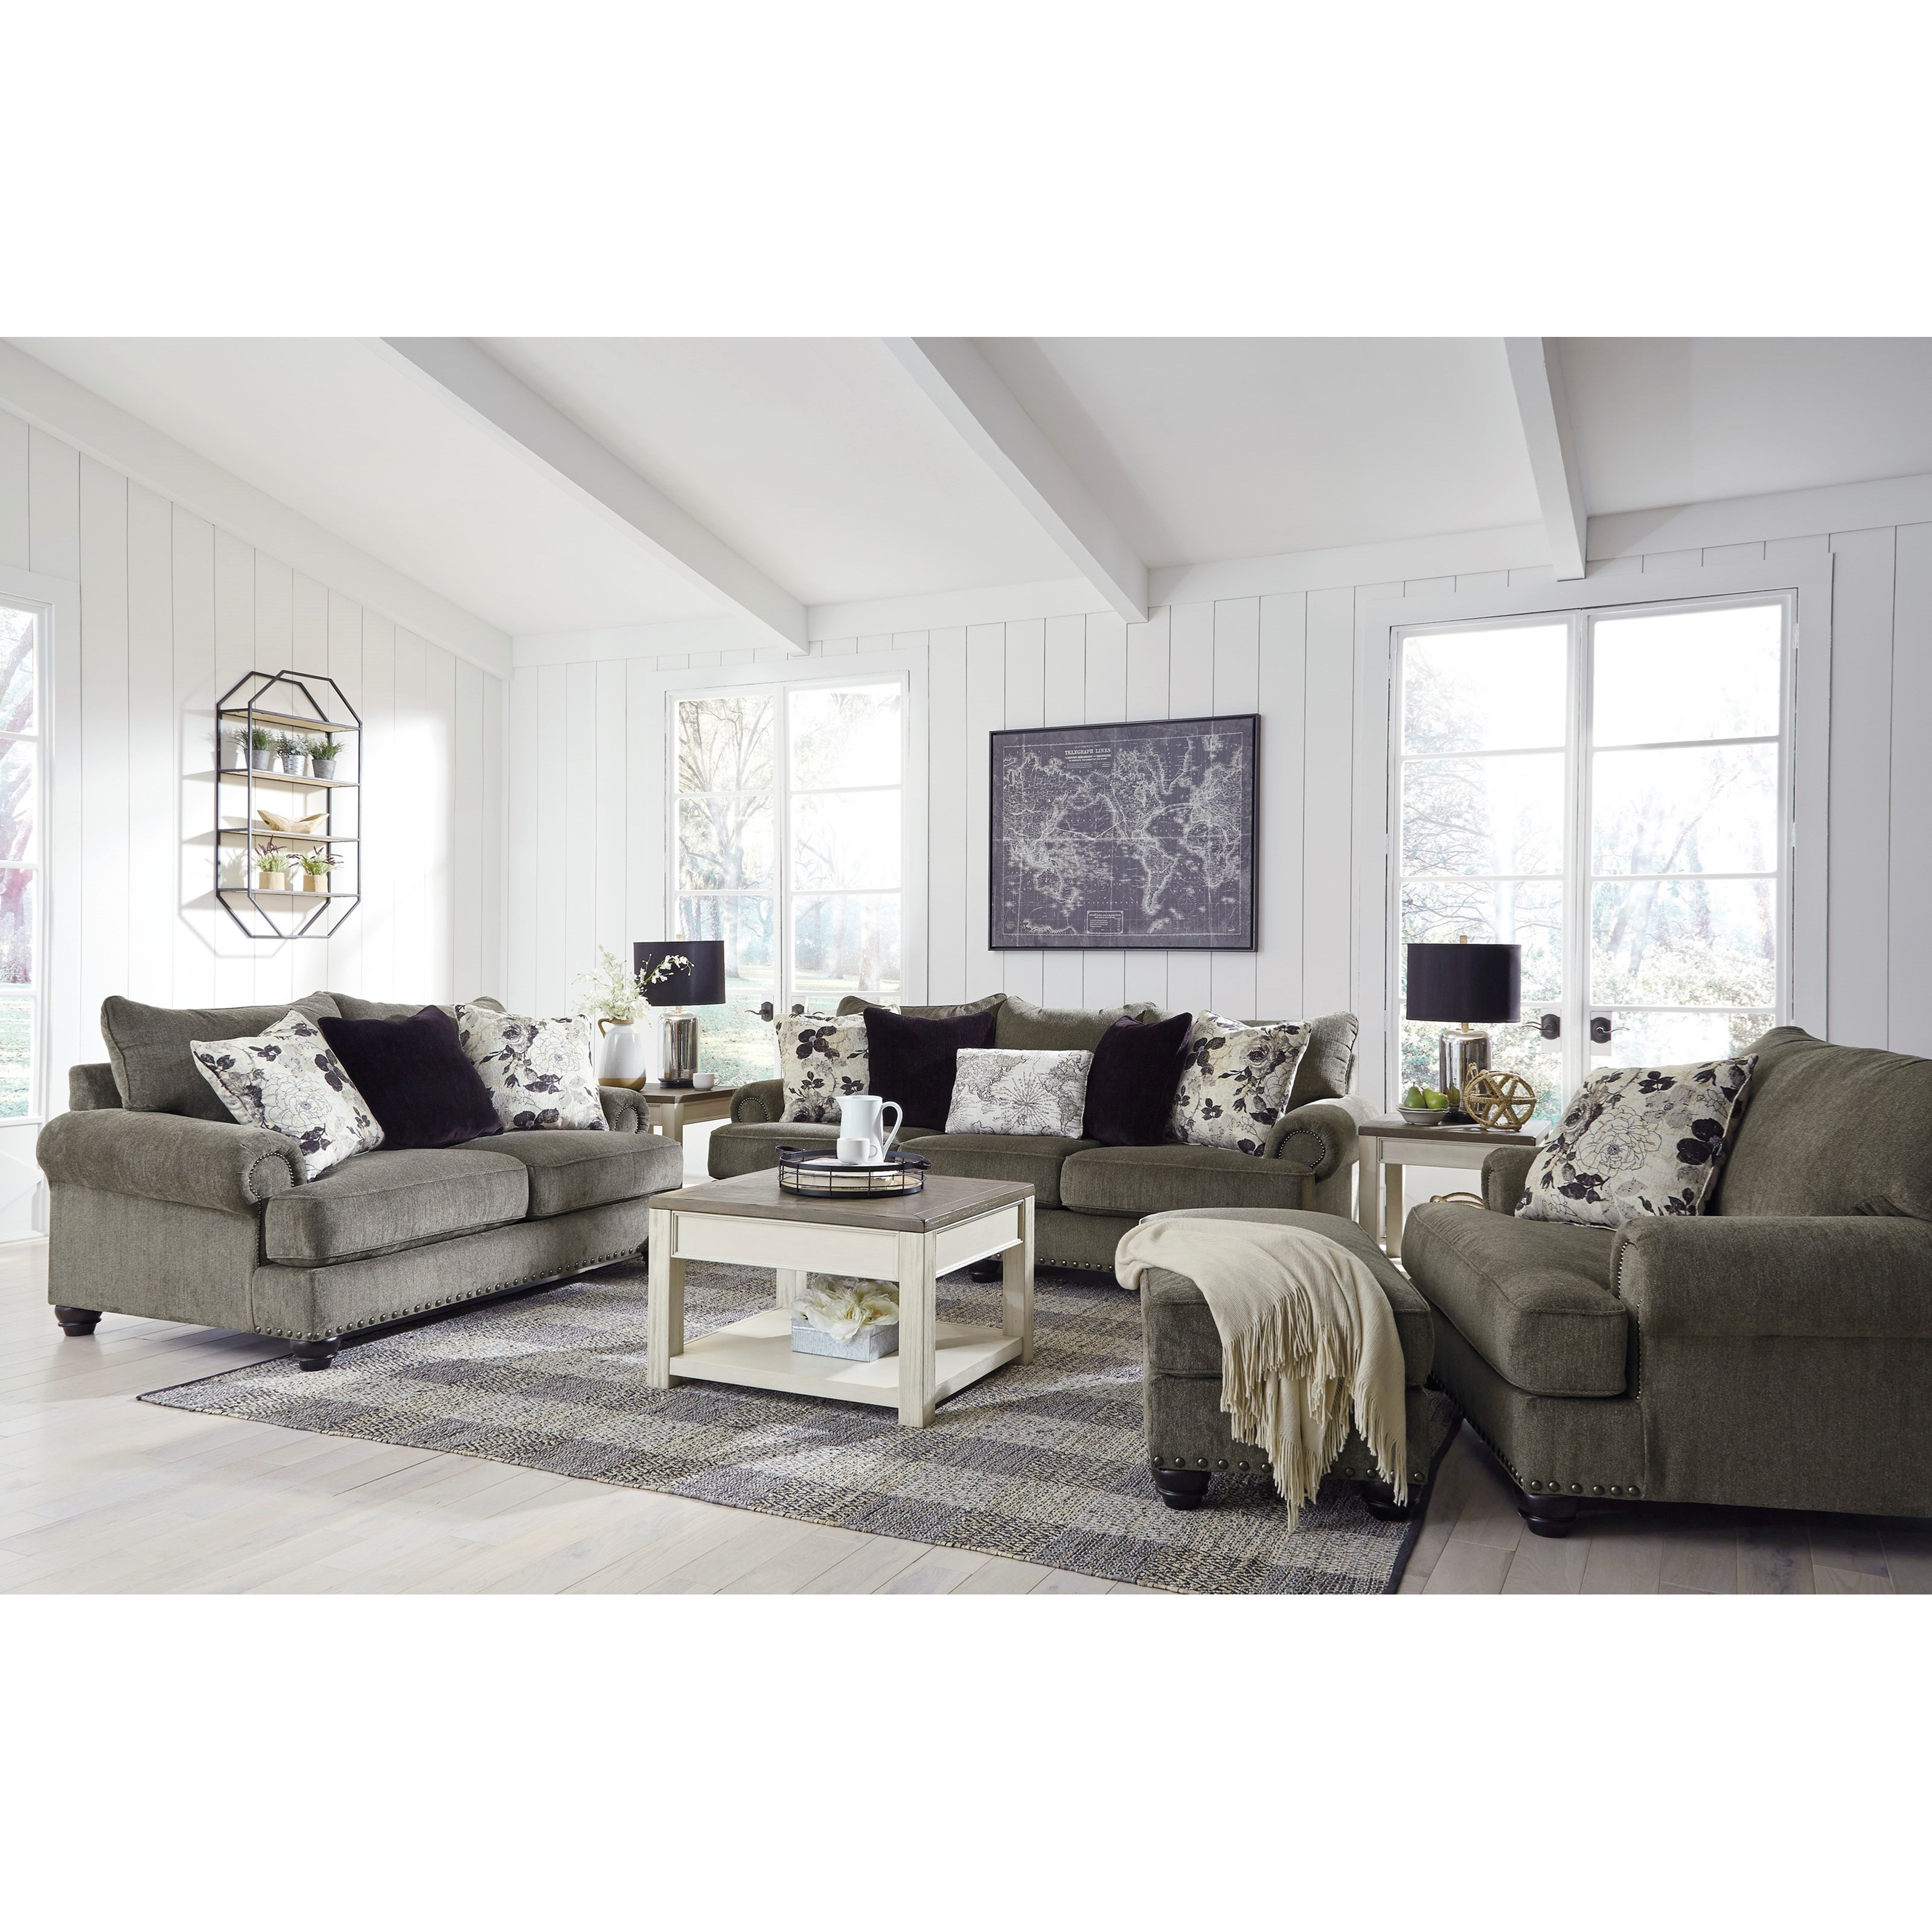 Sembler Living Room Group by Benchcraft at Standard Furniture